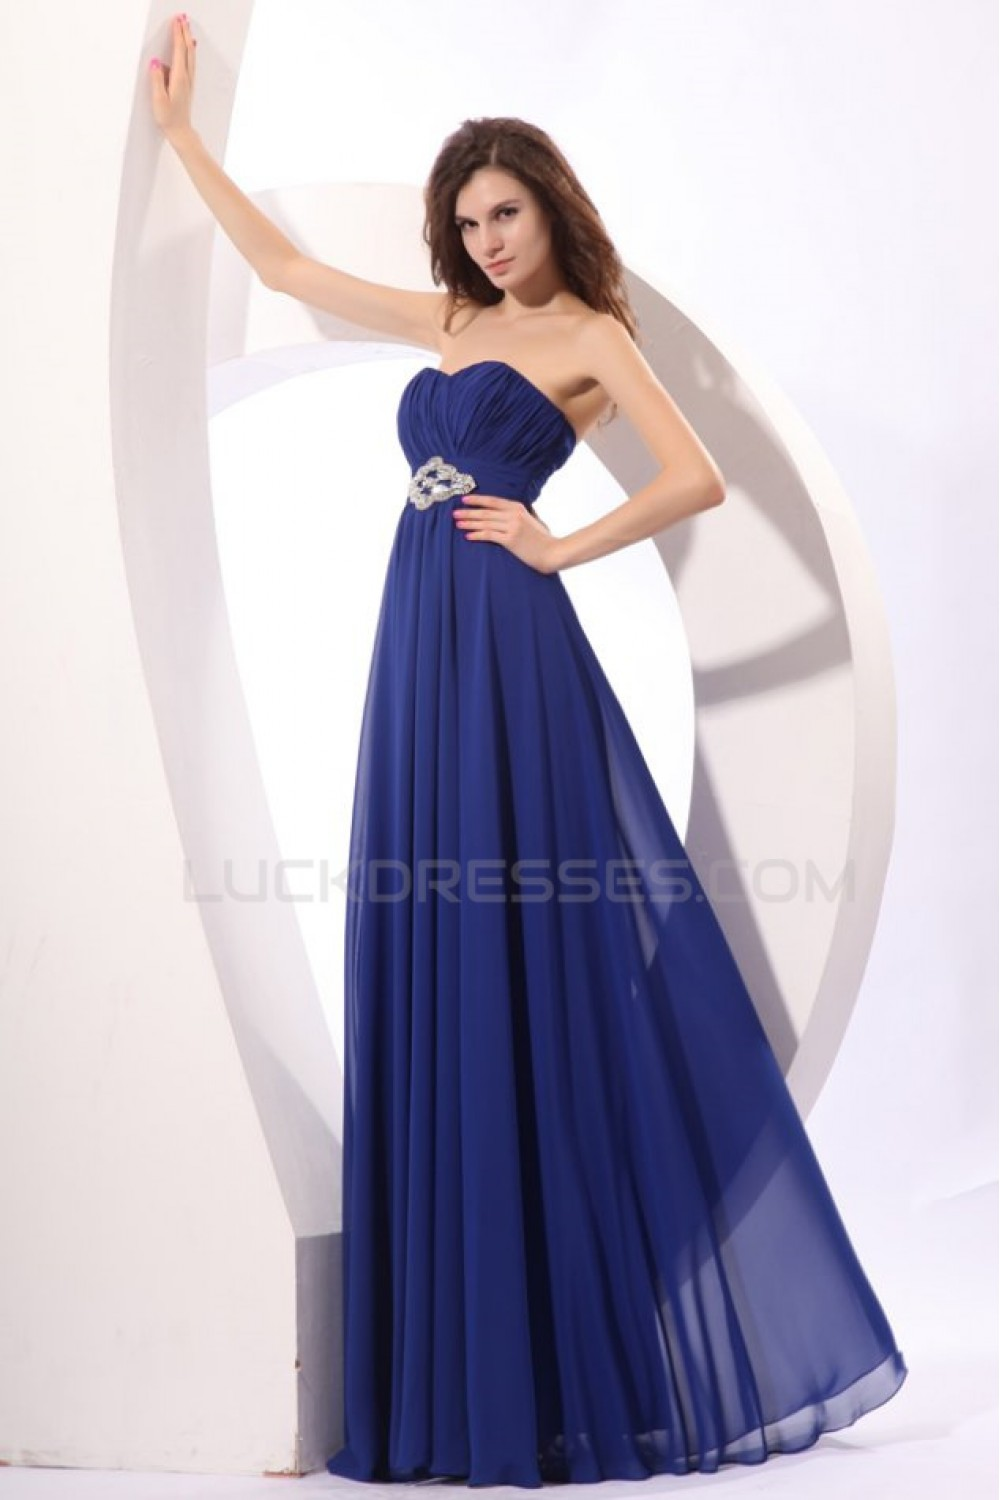 Blue chiffon prom evening formal party dressesmaternity evening long blue chiffon prom evening formal party dressesmaternity evening dresses ed010045 ombrellifo Choice Image